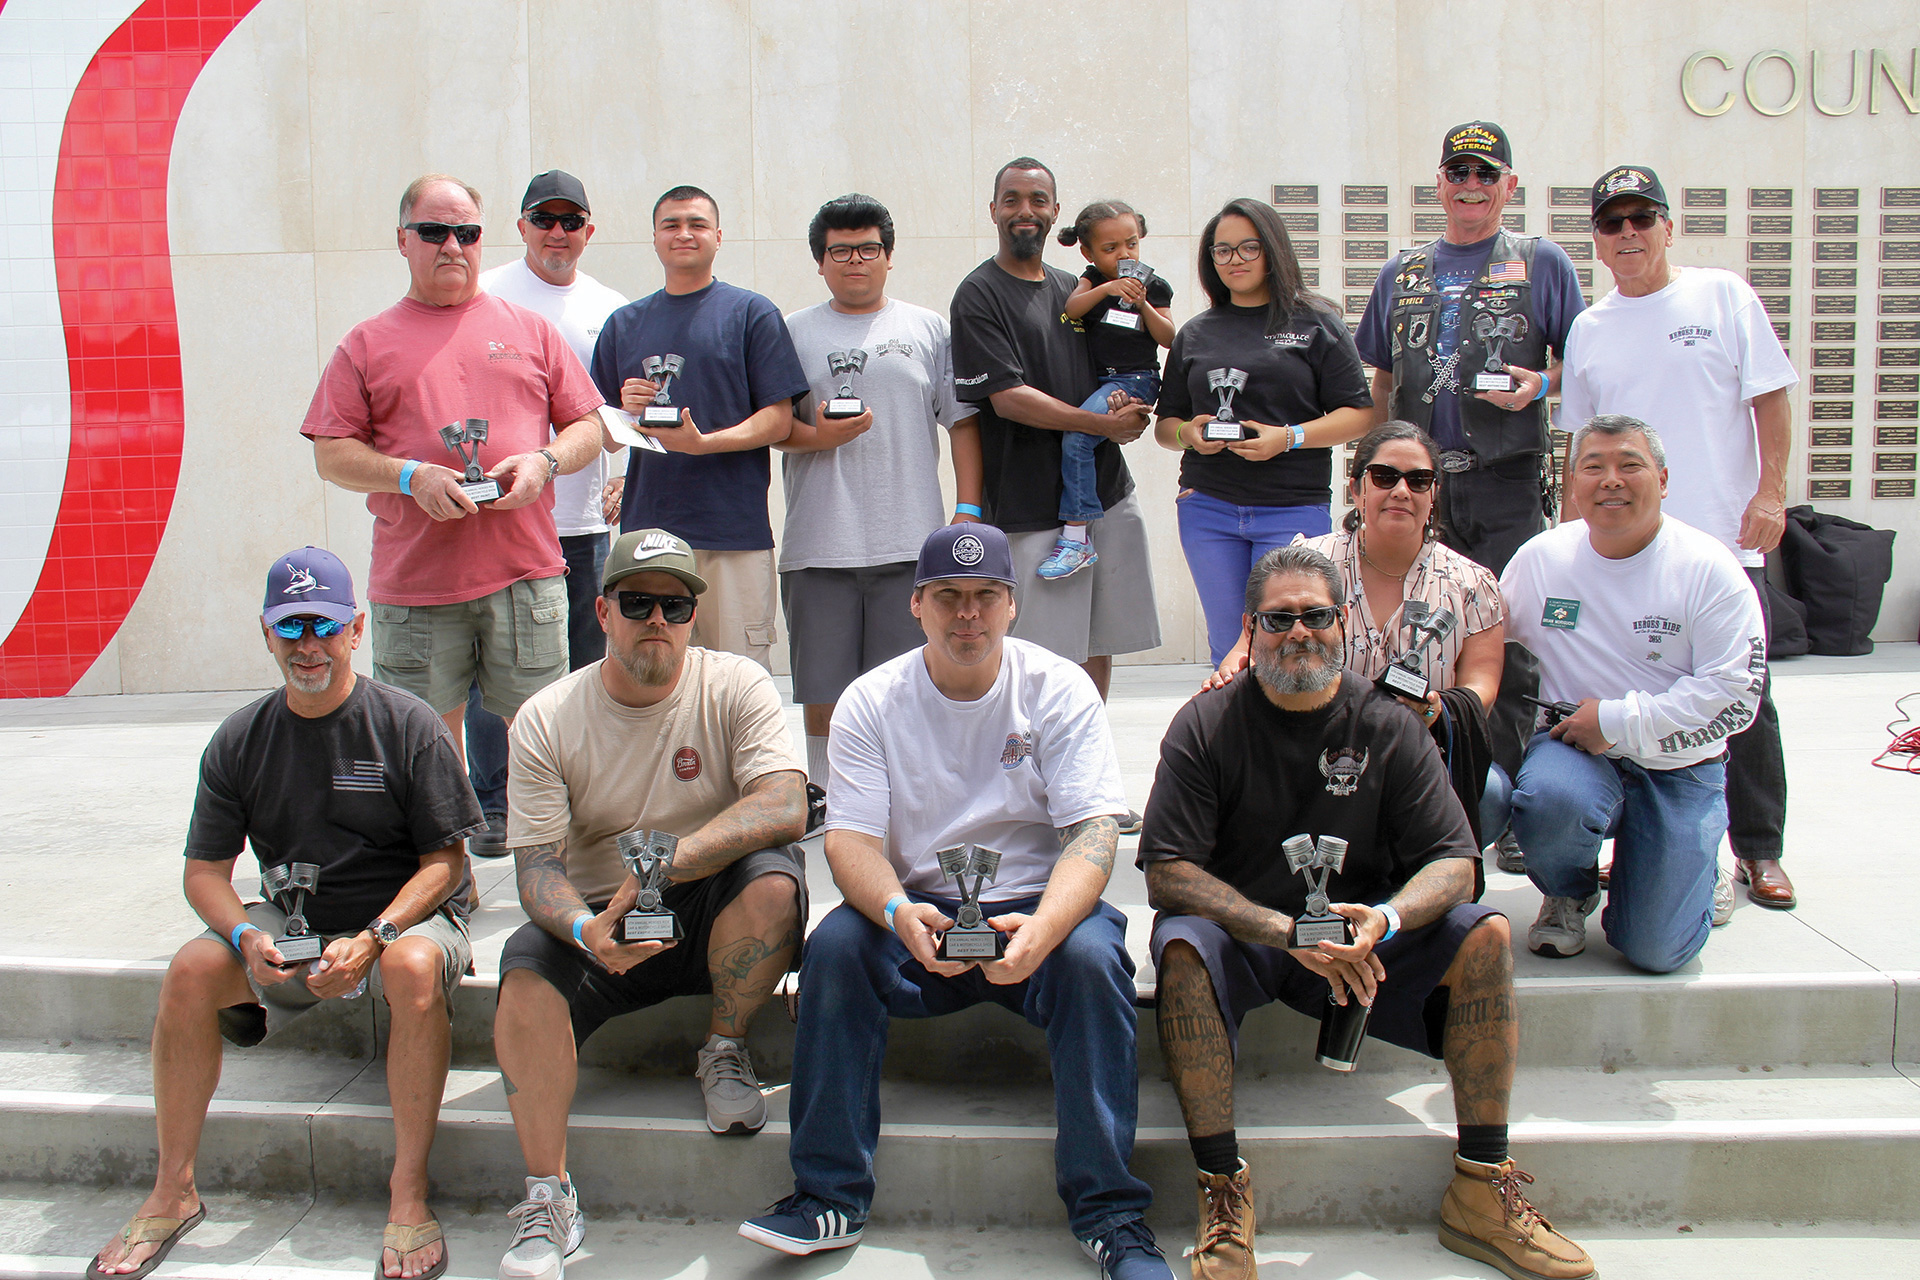 scenes-from-the-6th-annual-heroes-ride-7